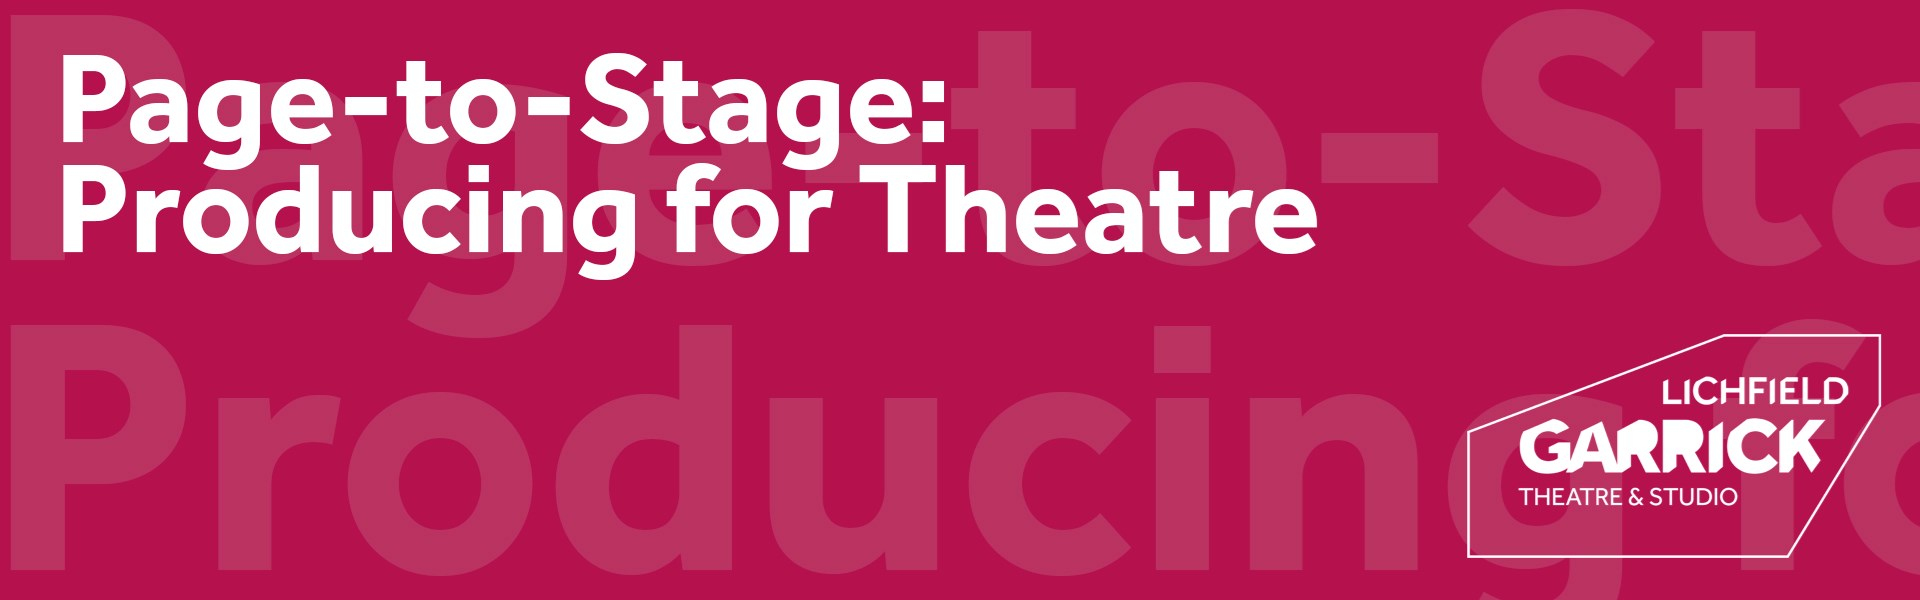 WORKSHOP: Page-to-Stage - Producing for Theatre